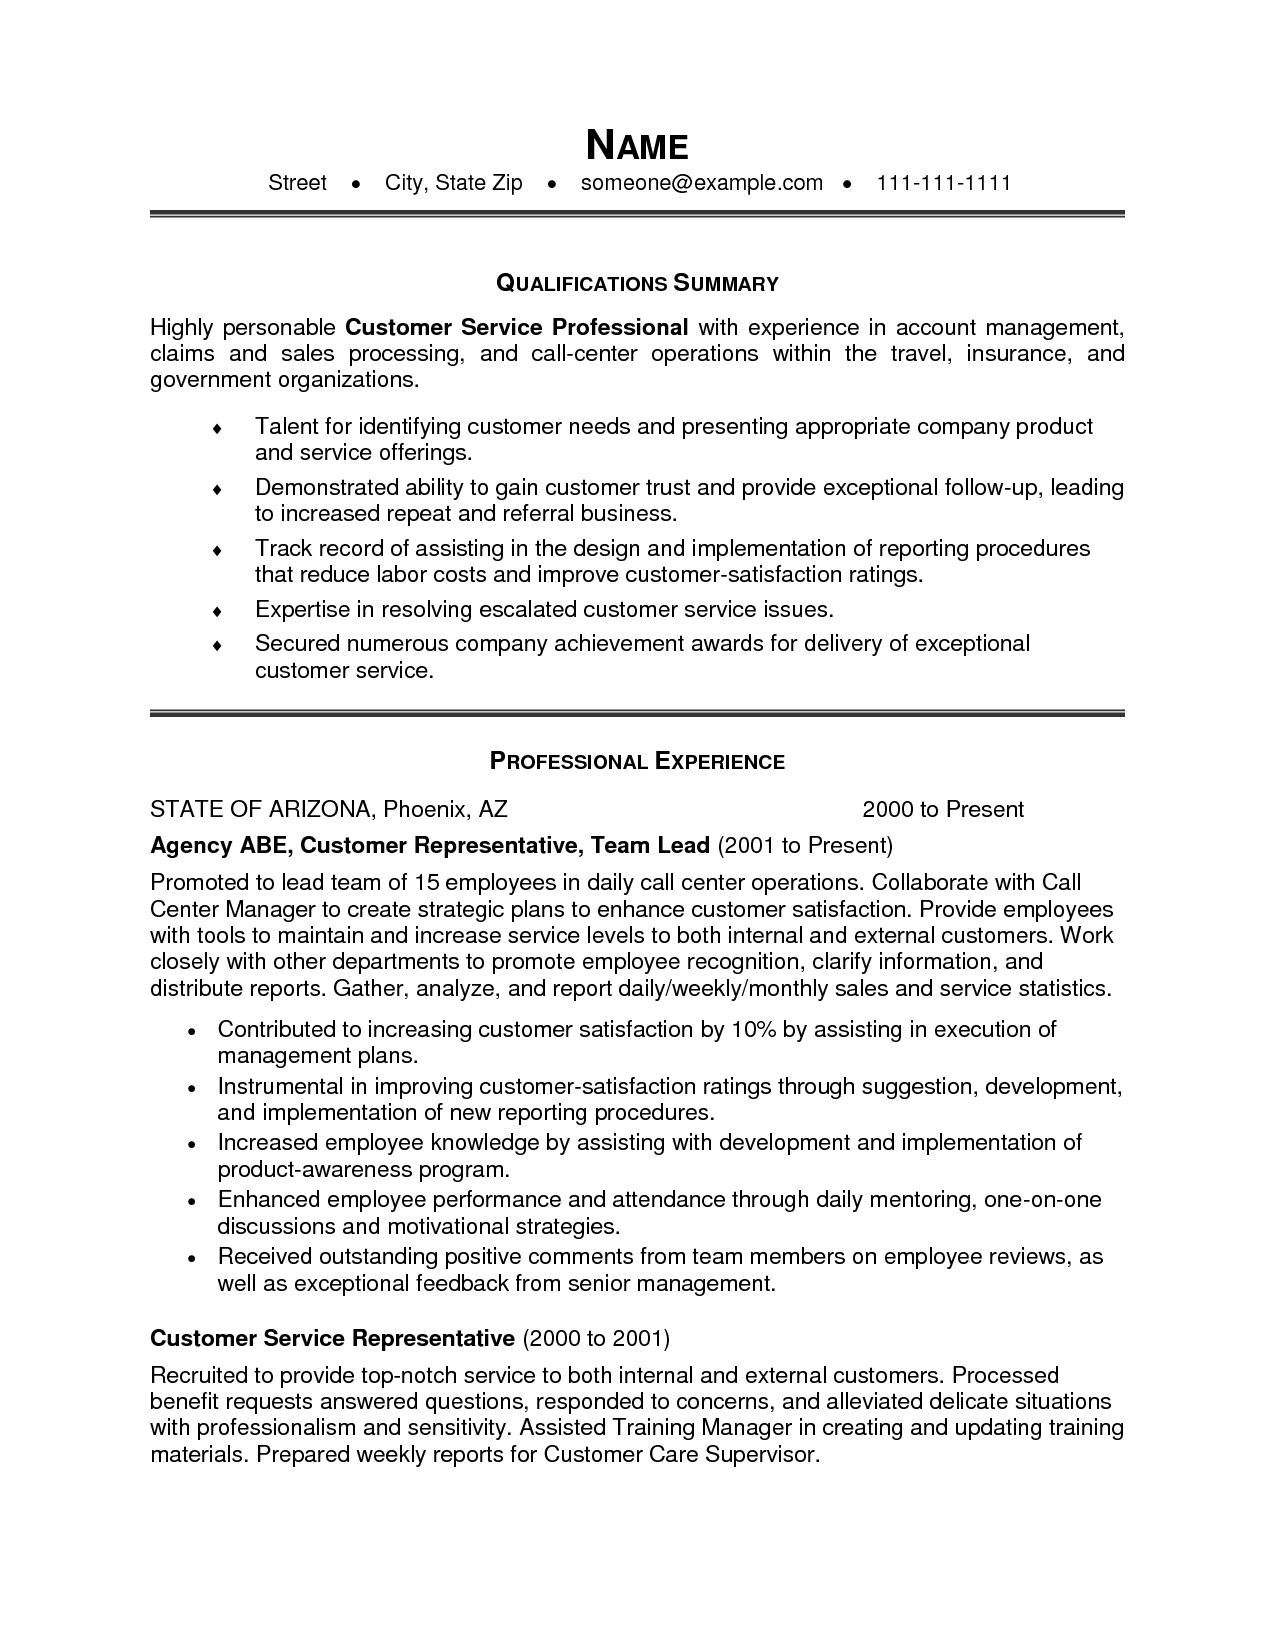 Resume Summary Example Customer Service Resume Summary Examples Resume Summary Examples